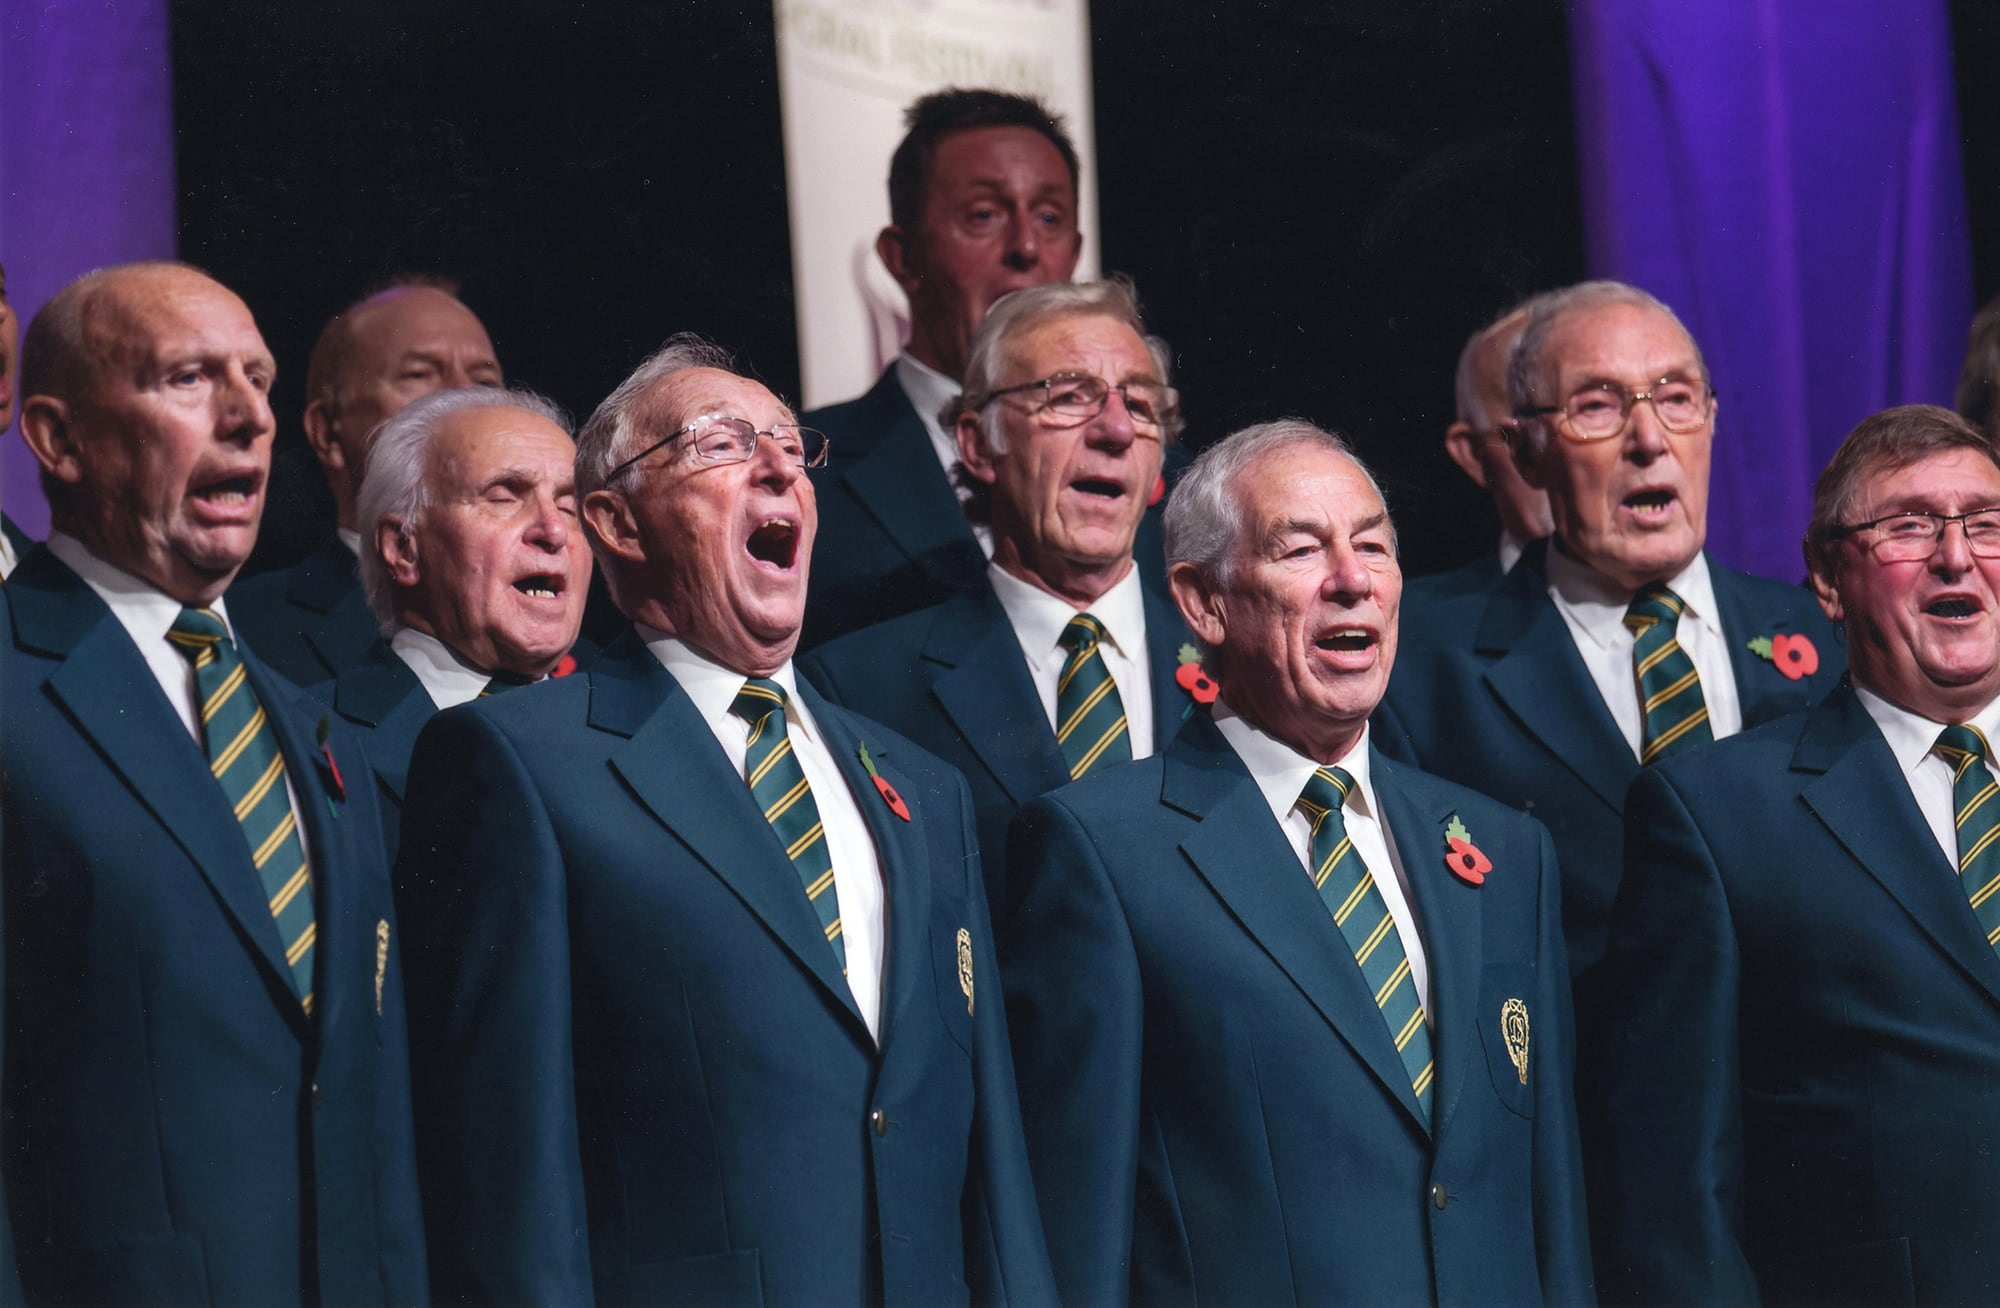 The Daleian Singers Choir performance